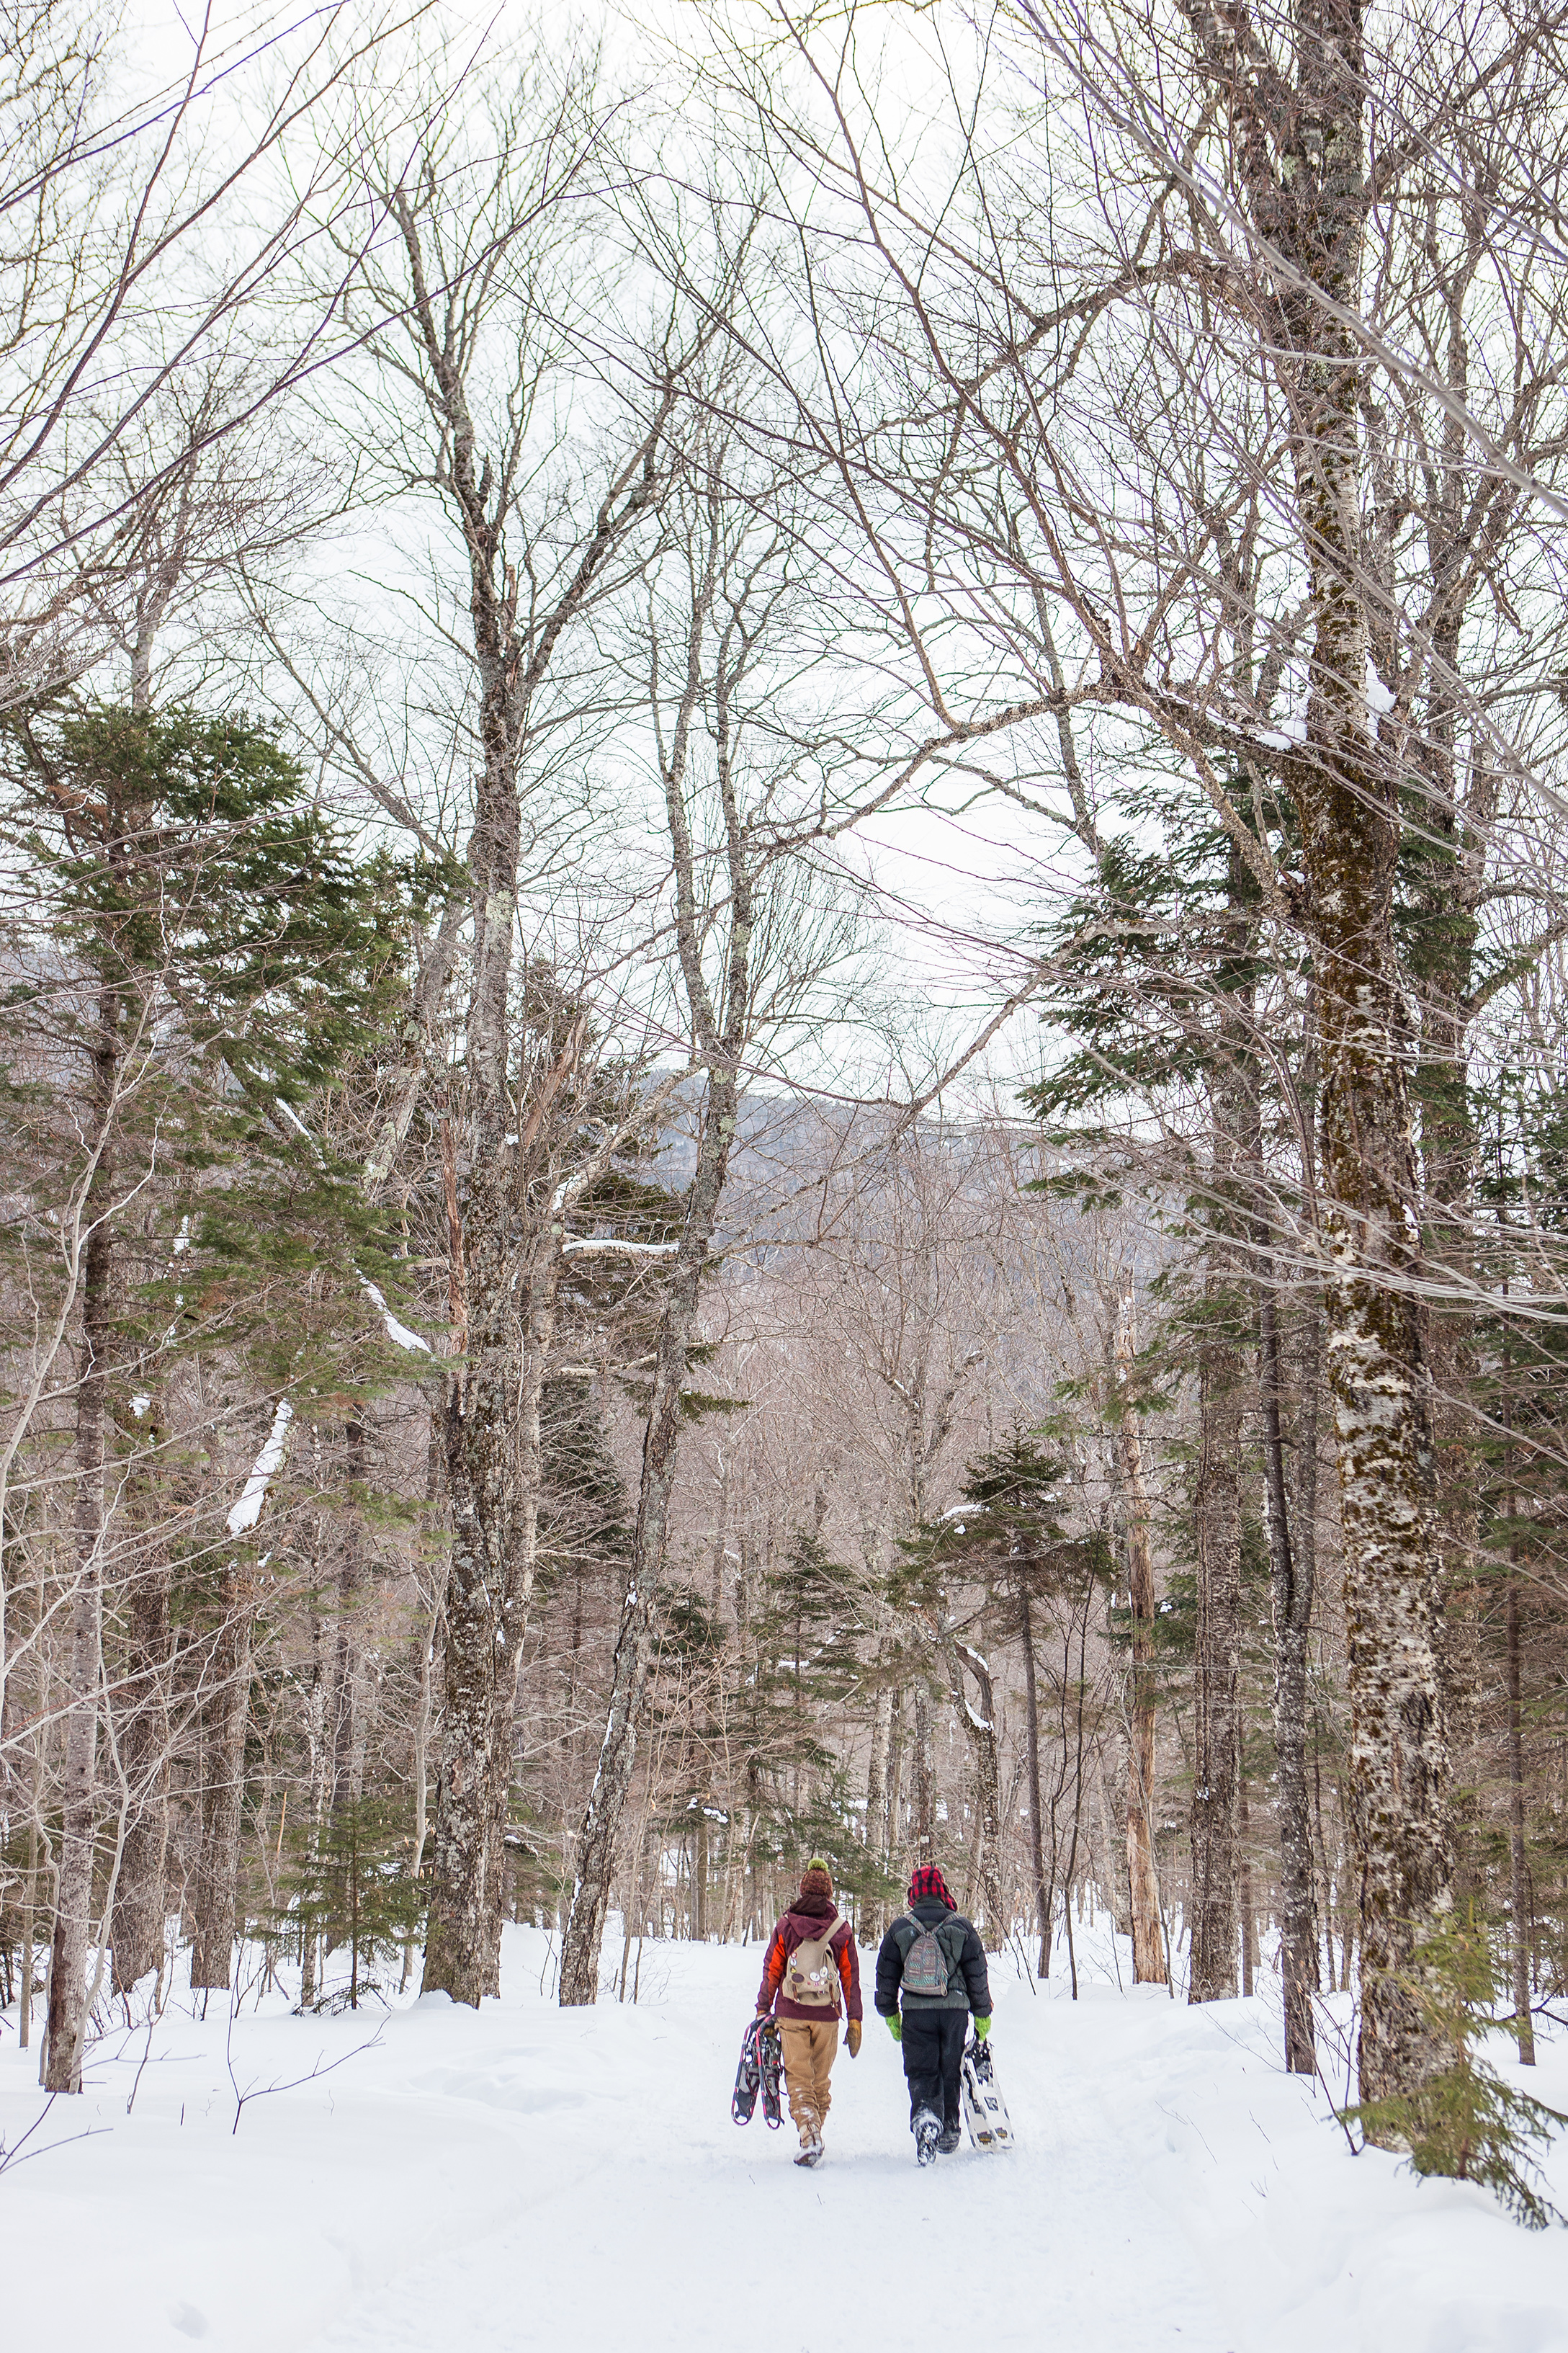 CindyGiovagnoli_Maine_Photographer_Winter_Mountains_Snow_Ski_Snowshoe-035.jpg